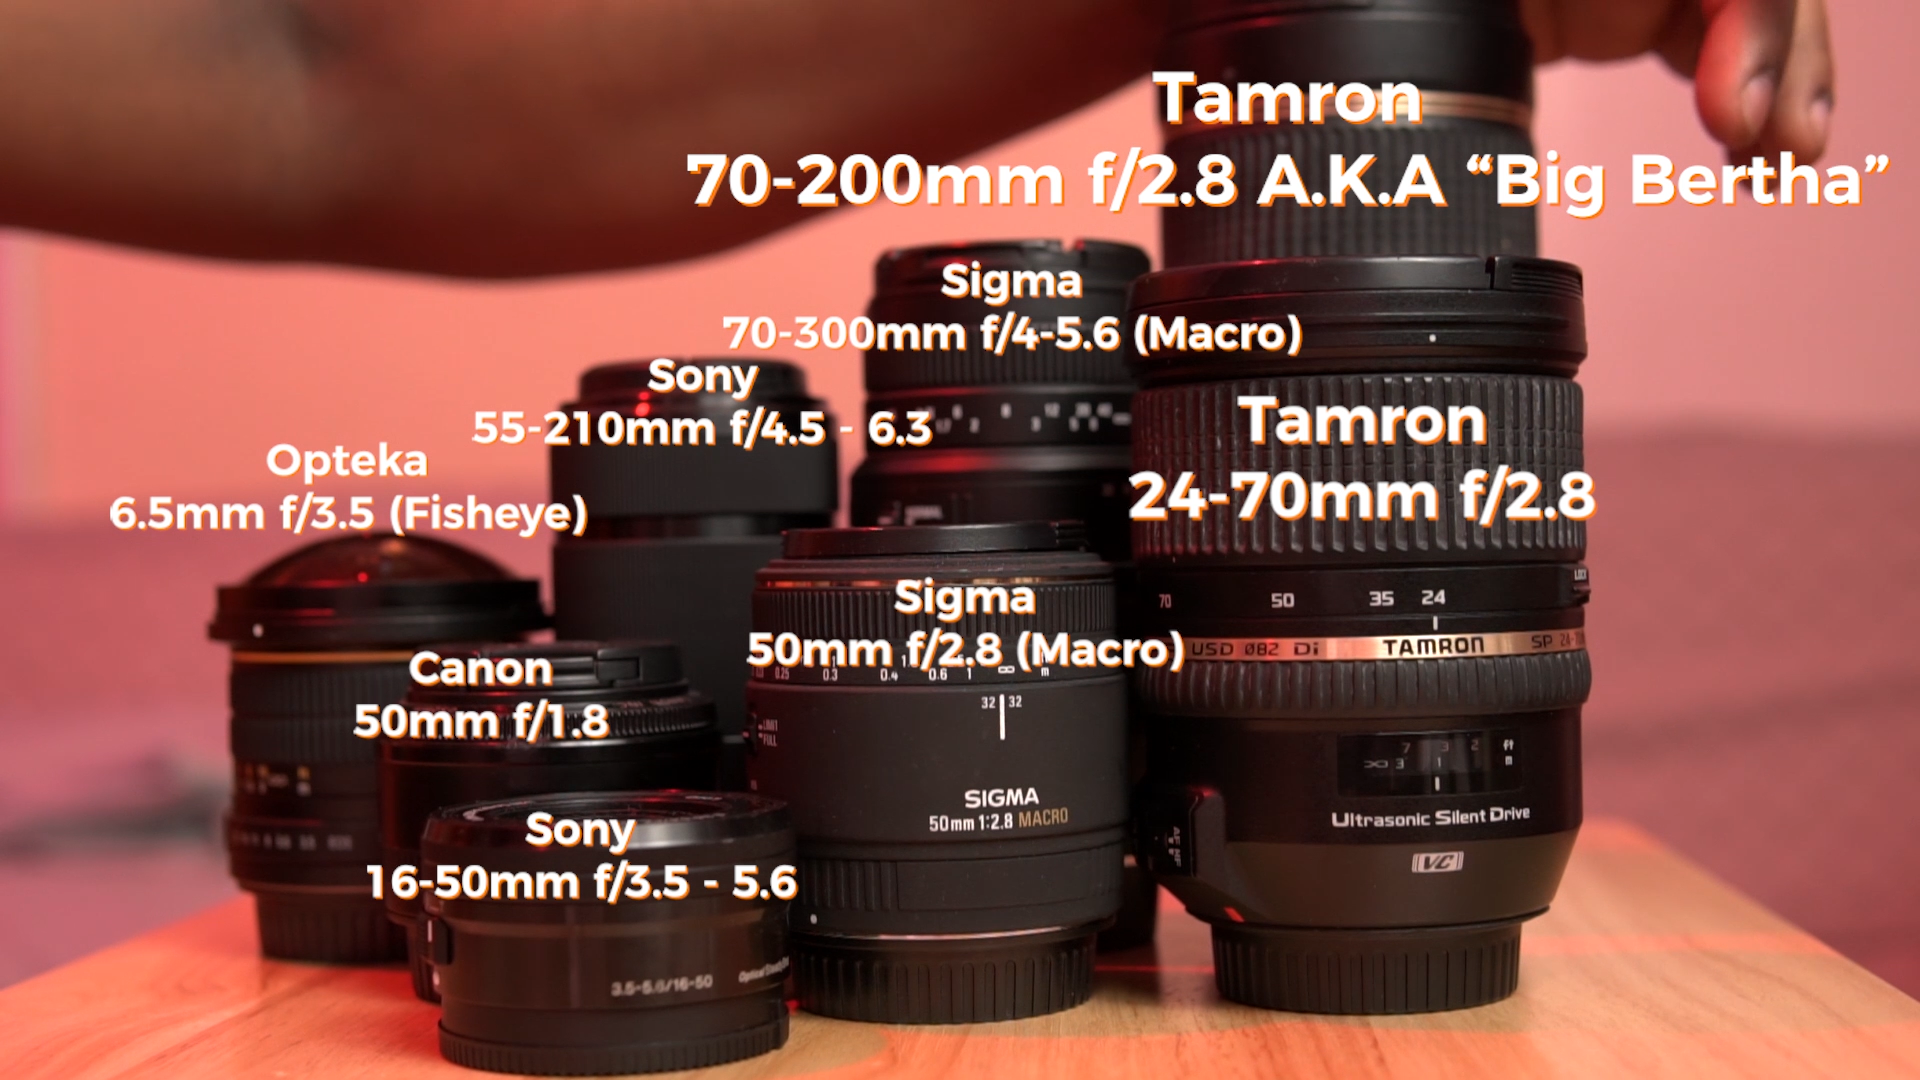 All About Lenses - This module is all about lenses and it's broken up into 3 different videos.First I'll give you a general overview of the different types of lenses and what they are used for.Then we'll go outside on location and put each focal length into practice. Afterwards we'll compare them side by side so that you can see the pros and cons of each type of focal length.Lastly, i'll give a more thorough demonstration of Variable Aperture lenses and how they work compared to Fixed Aperture lenses.